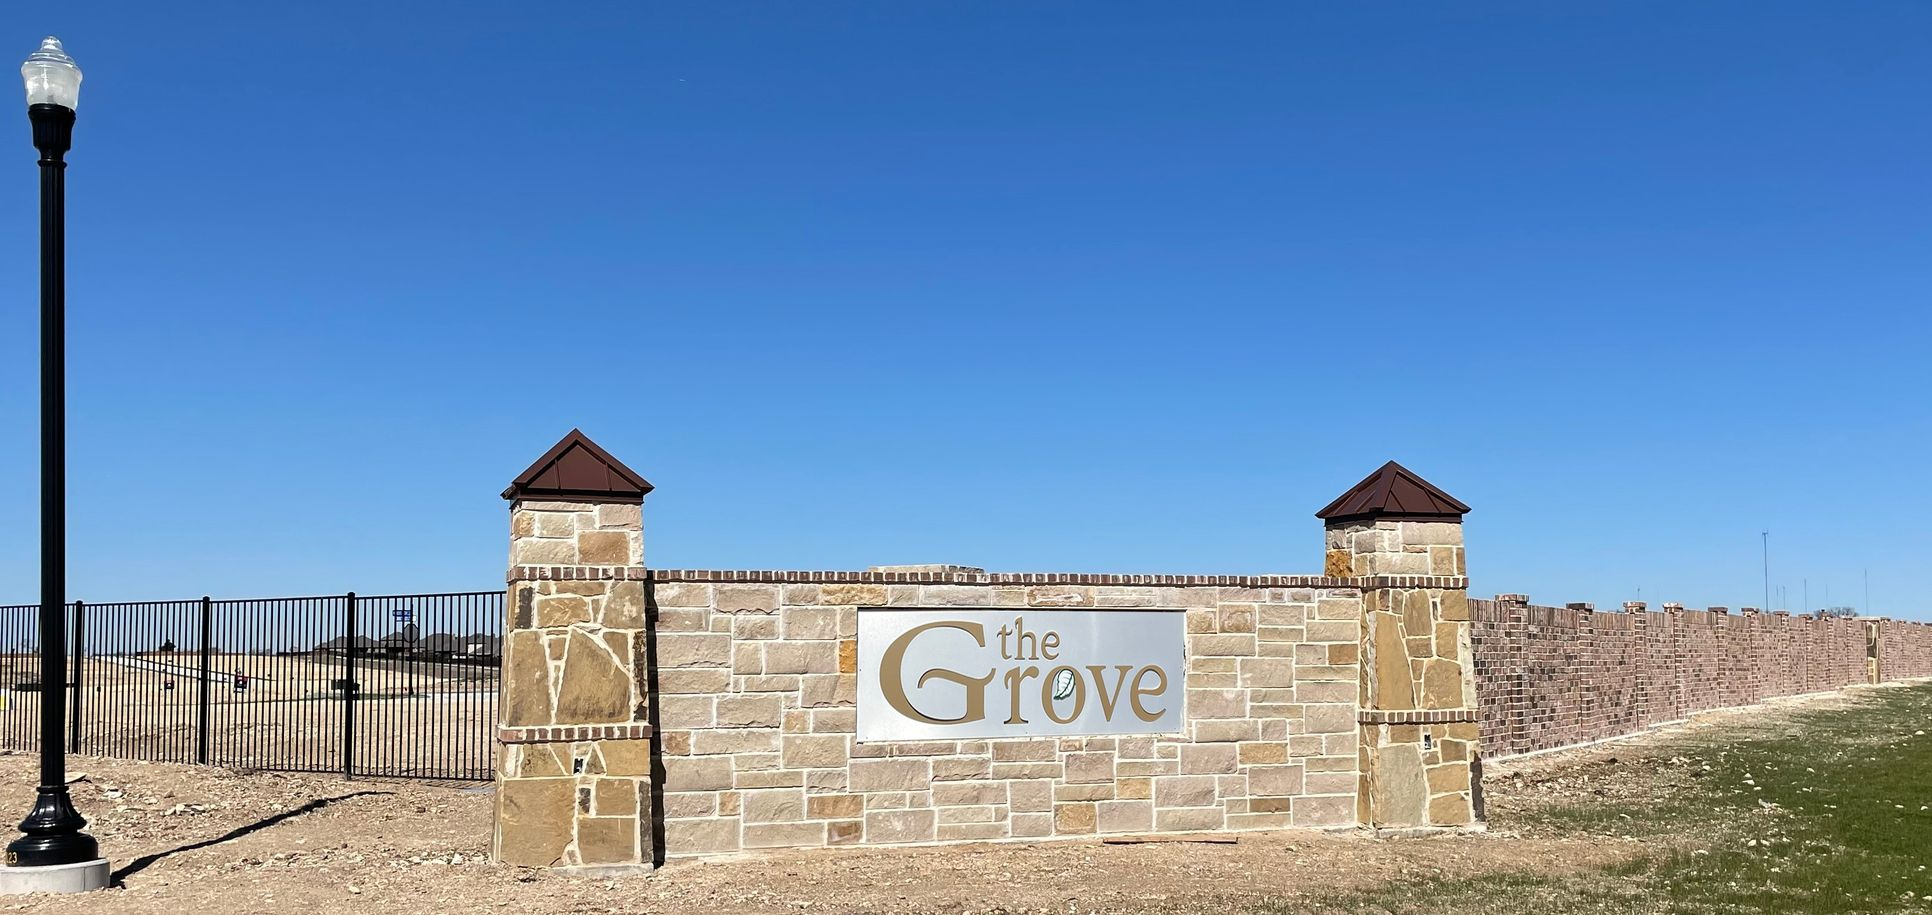 The Grove Sign:The Grove Sign